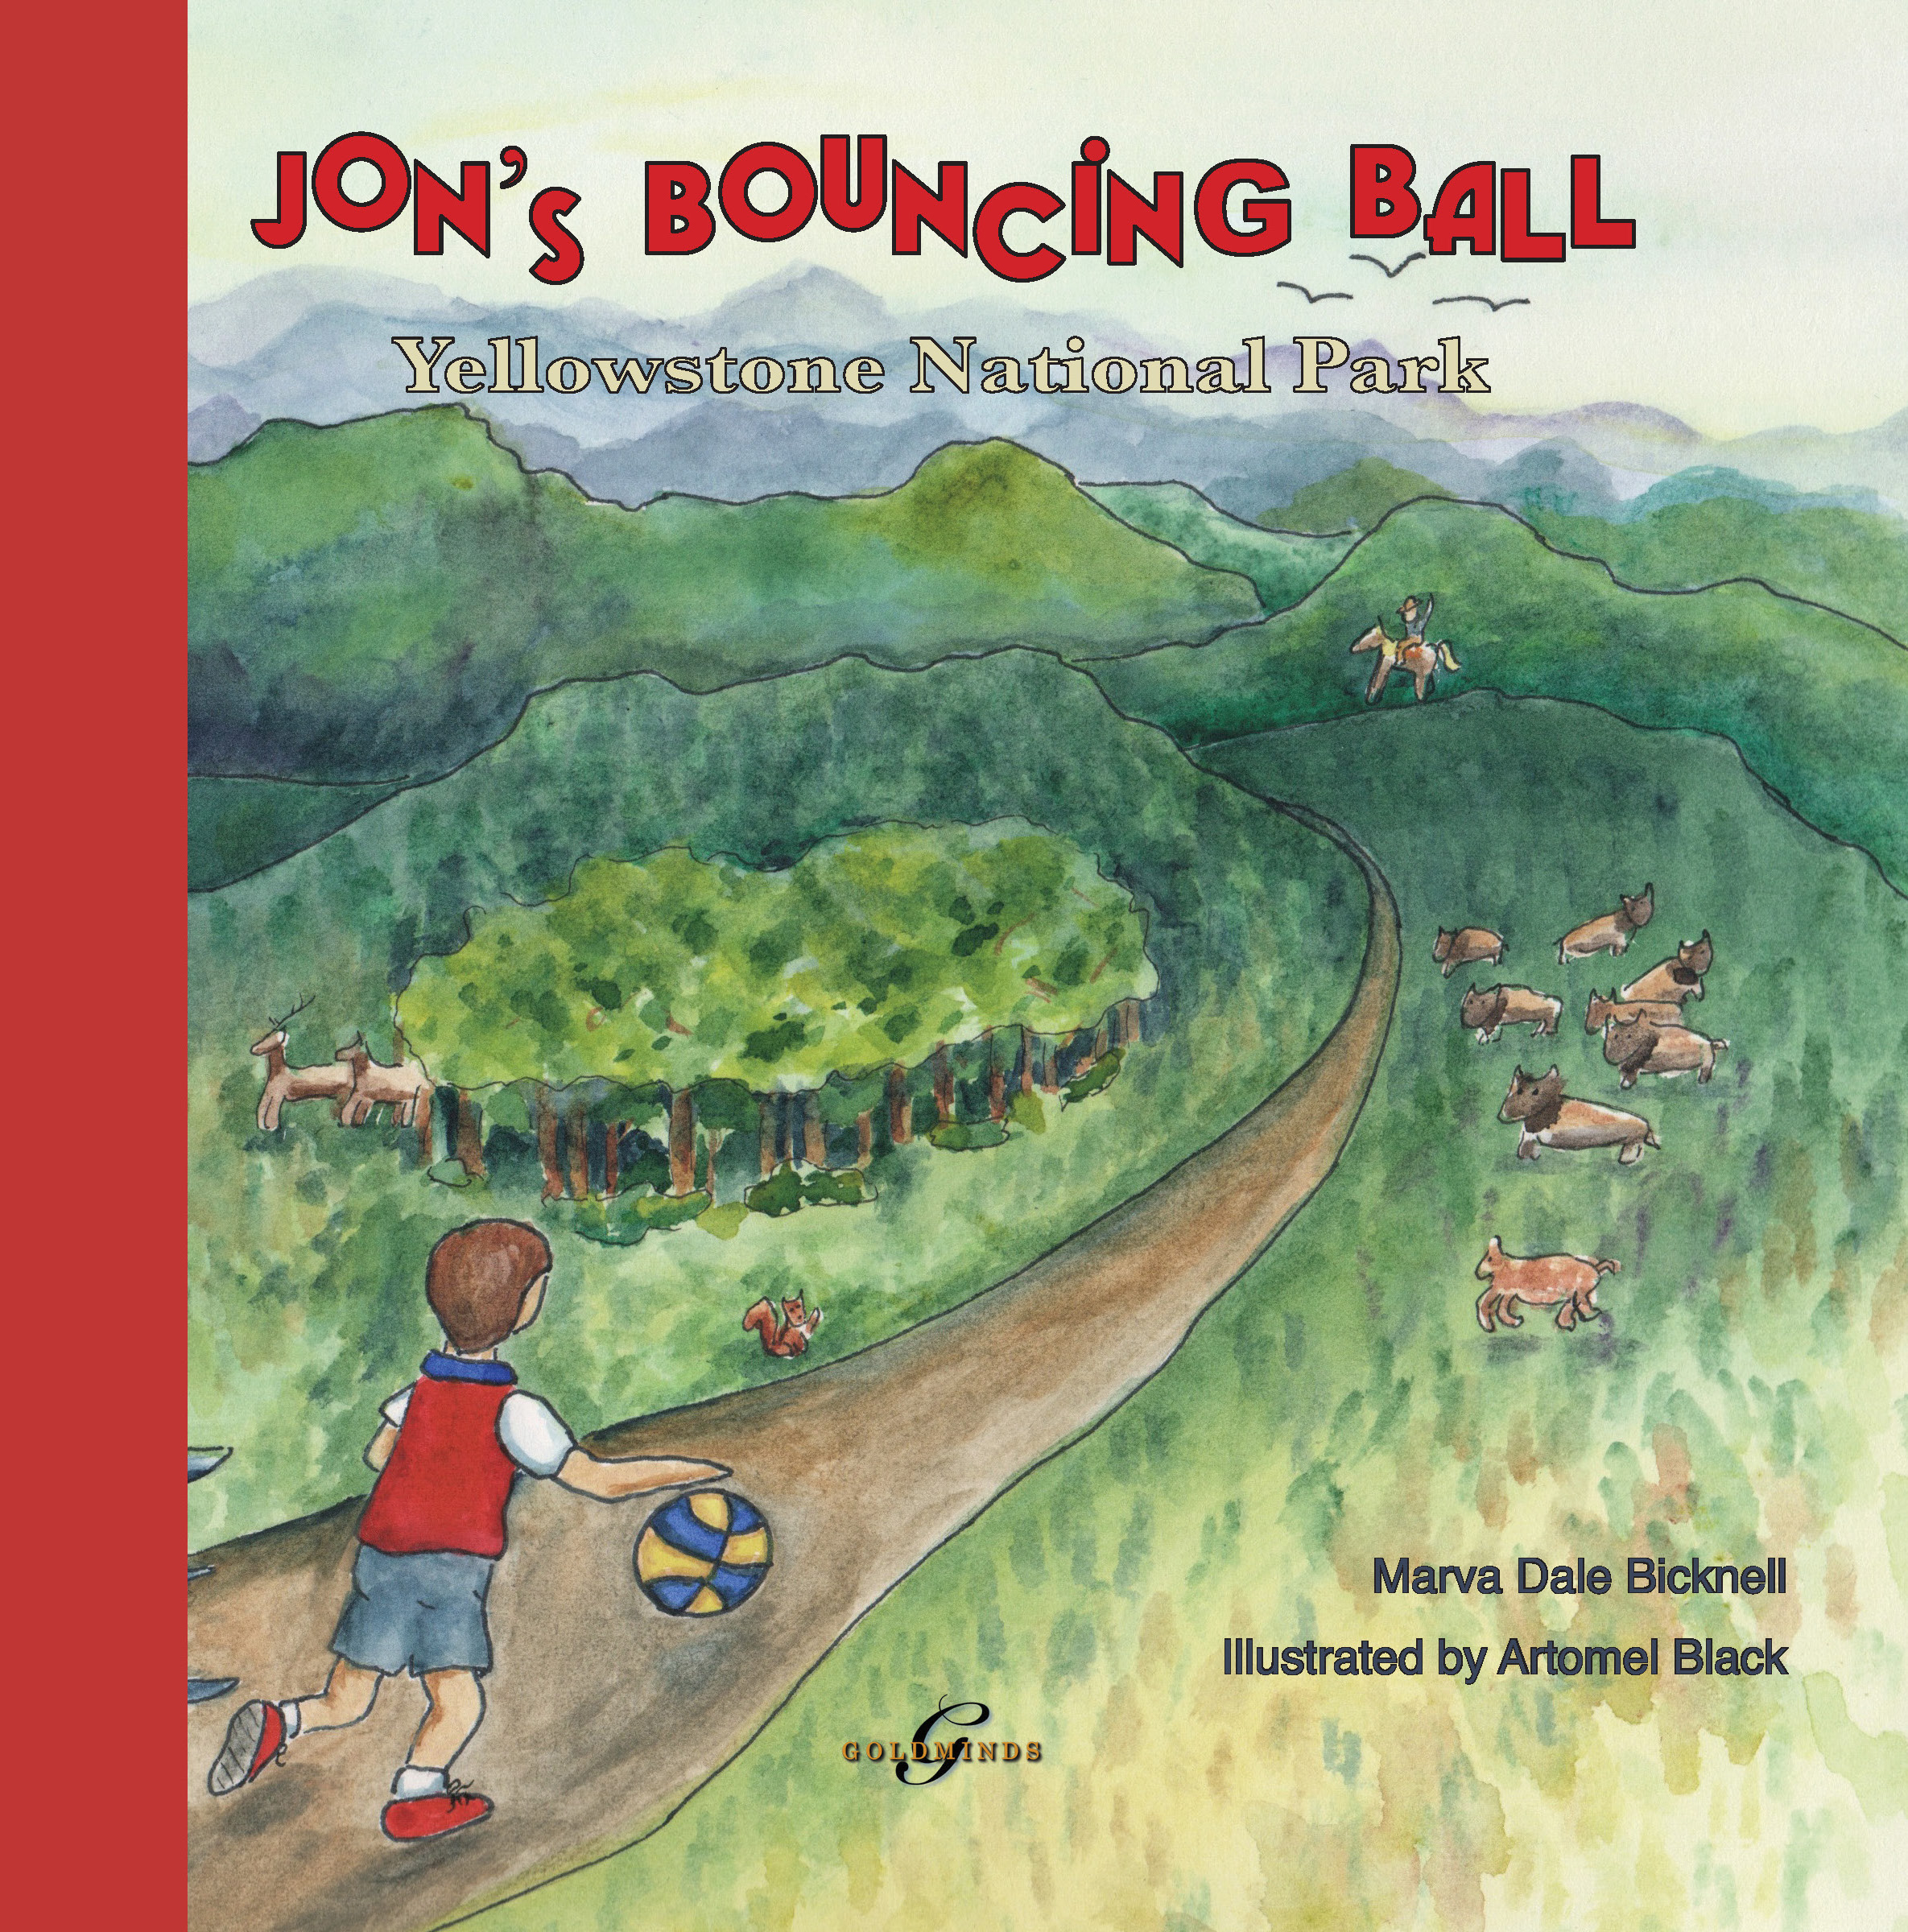 Jon's Bouncing Ball